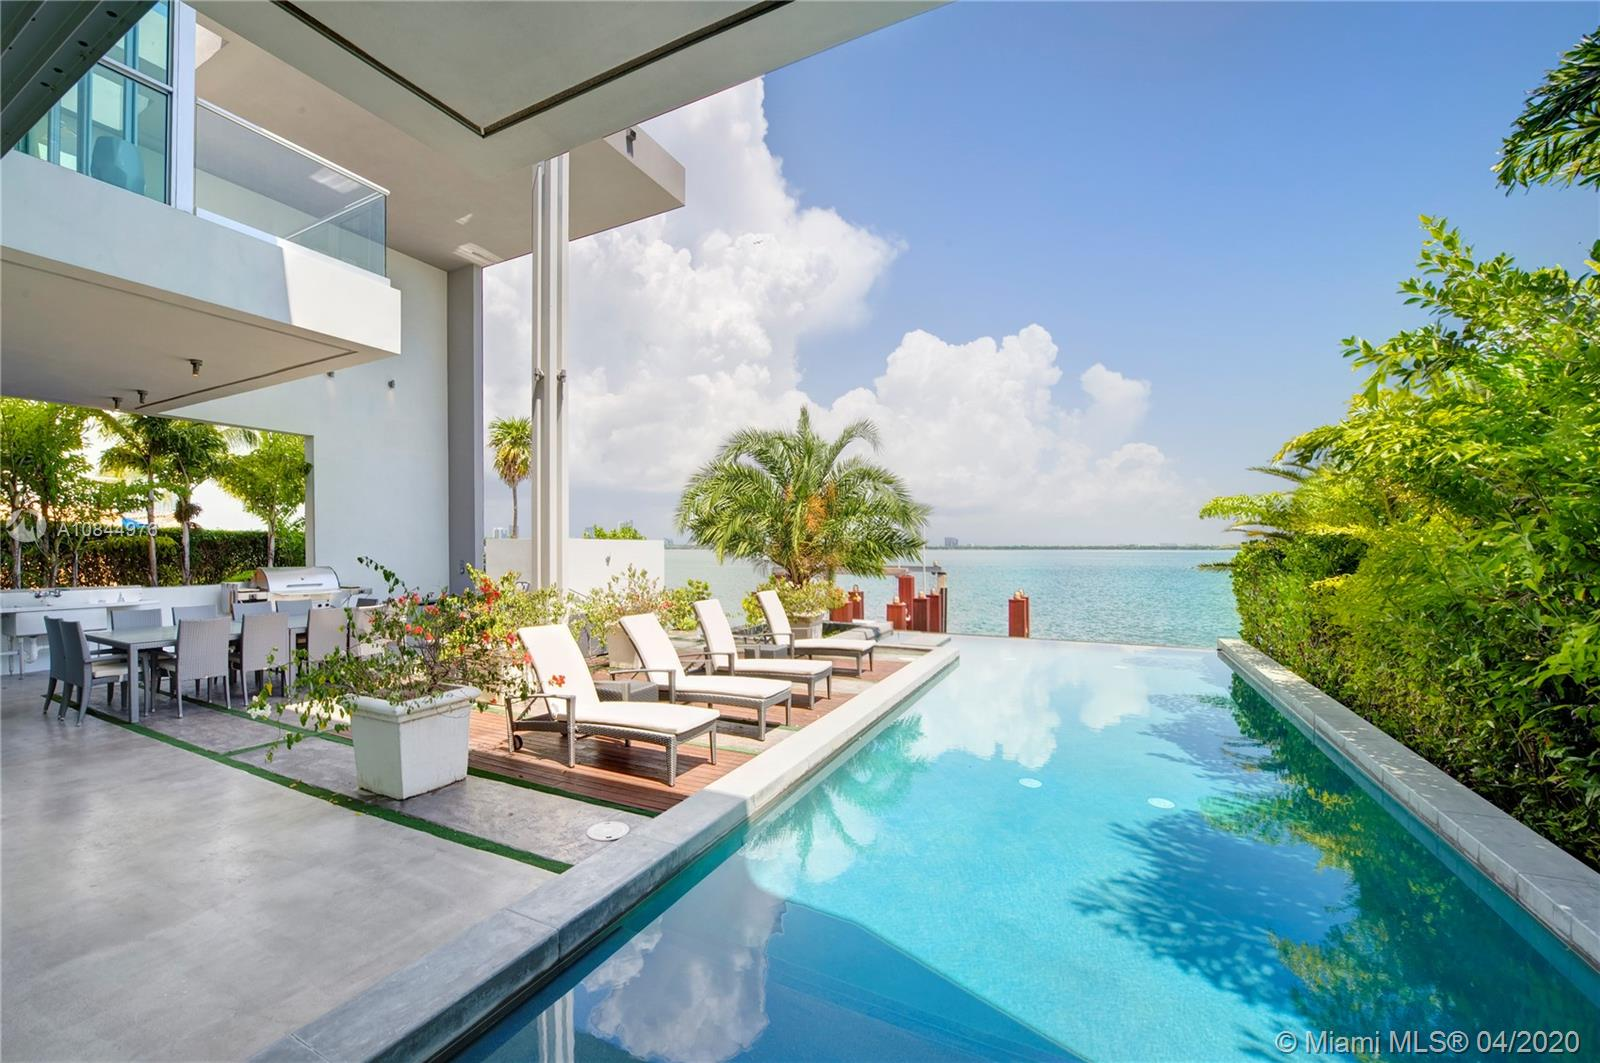 Luxury modern waterfront home on Venetian Islands with soaring ceilings and walls of glass taking in the magnificent wide bay views in every direction! Features include open floorplan, lavish master suite, walk-in closets, infinity pool, and IPE dock. Rooftop terraces and 60 feet on the water. Fabulous water views and large covered outdoor entertaining area. Available for a minimum of three days and also available for weekly rentals. Call for rates. $45,000 FOR ANNUAL RENTAL ONLY.